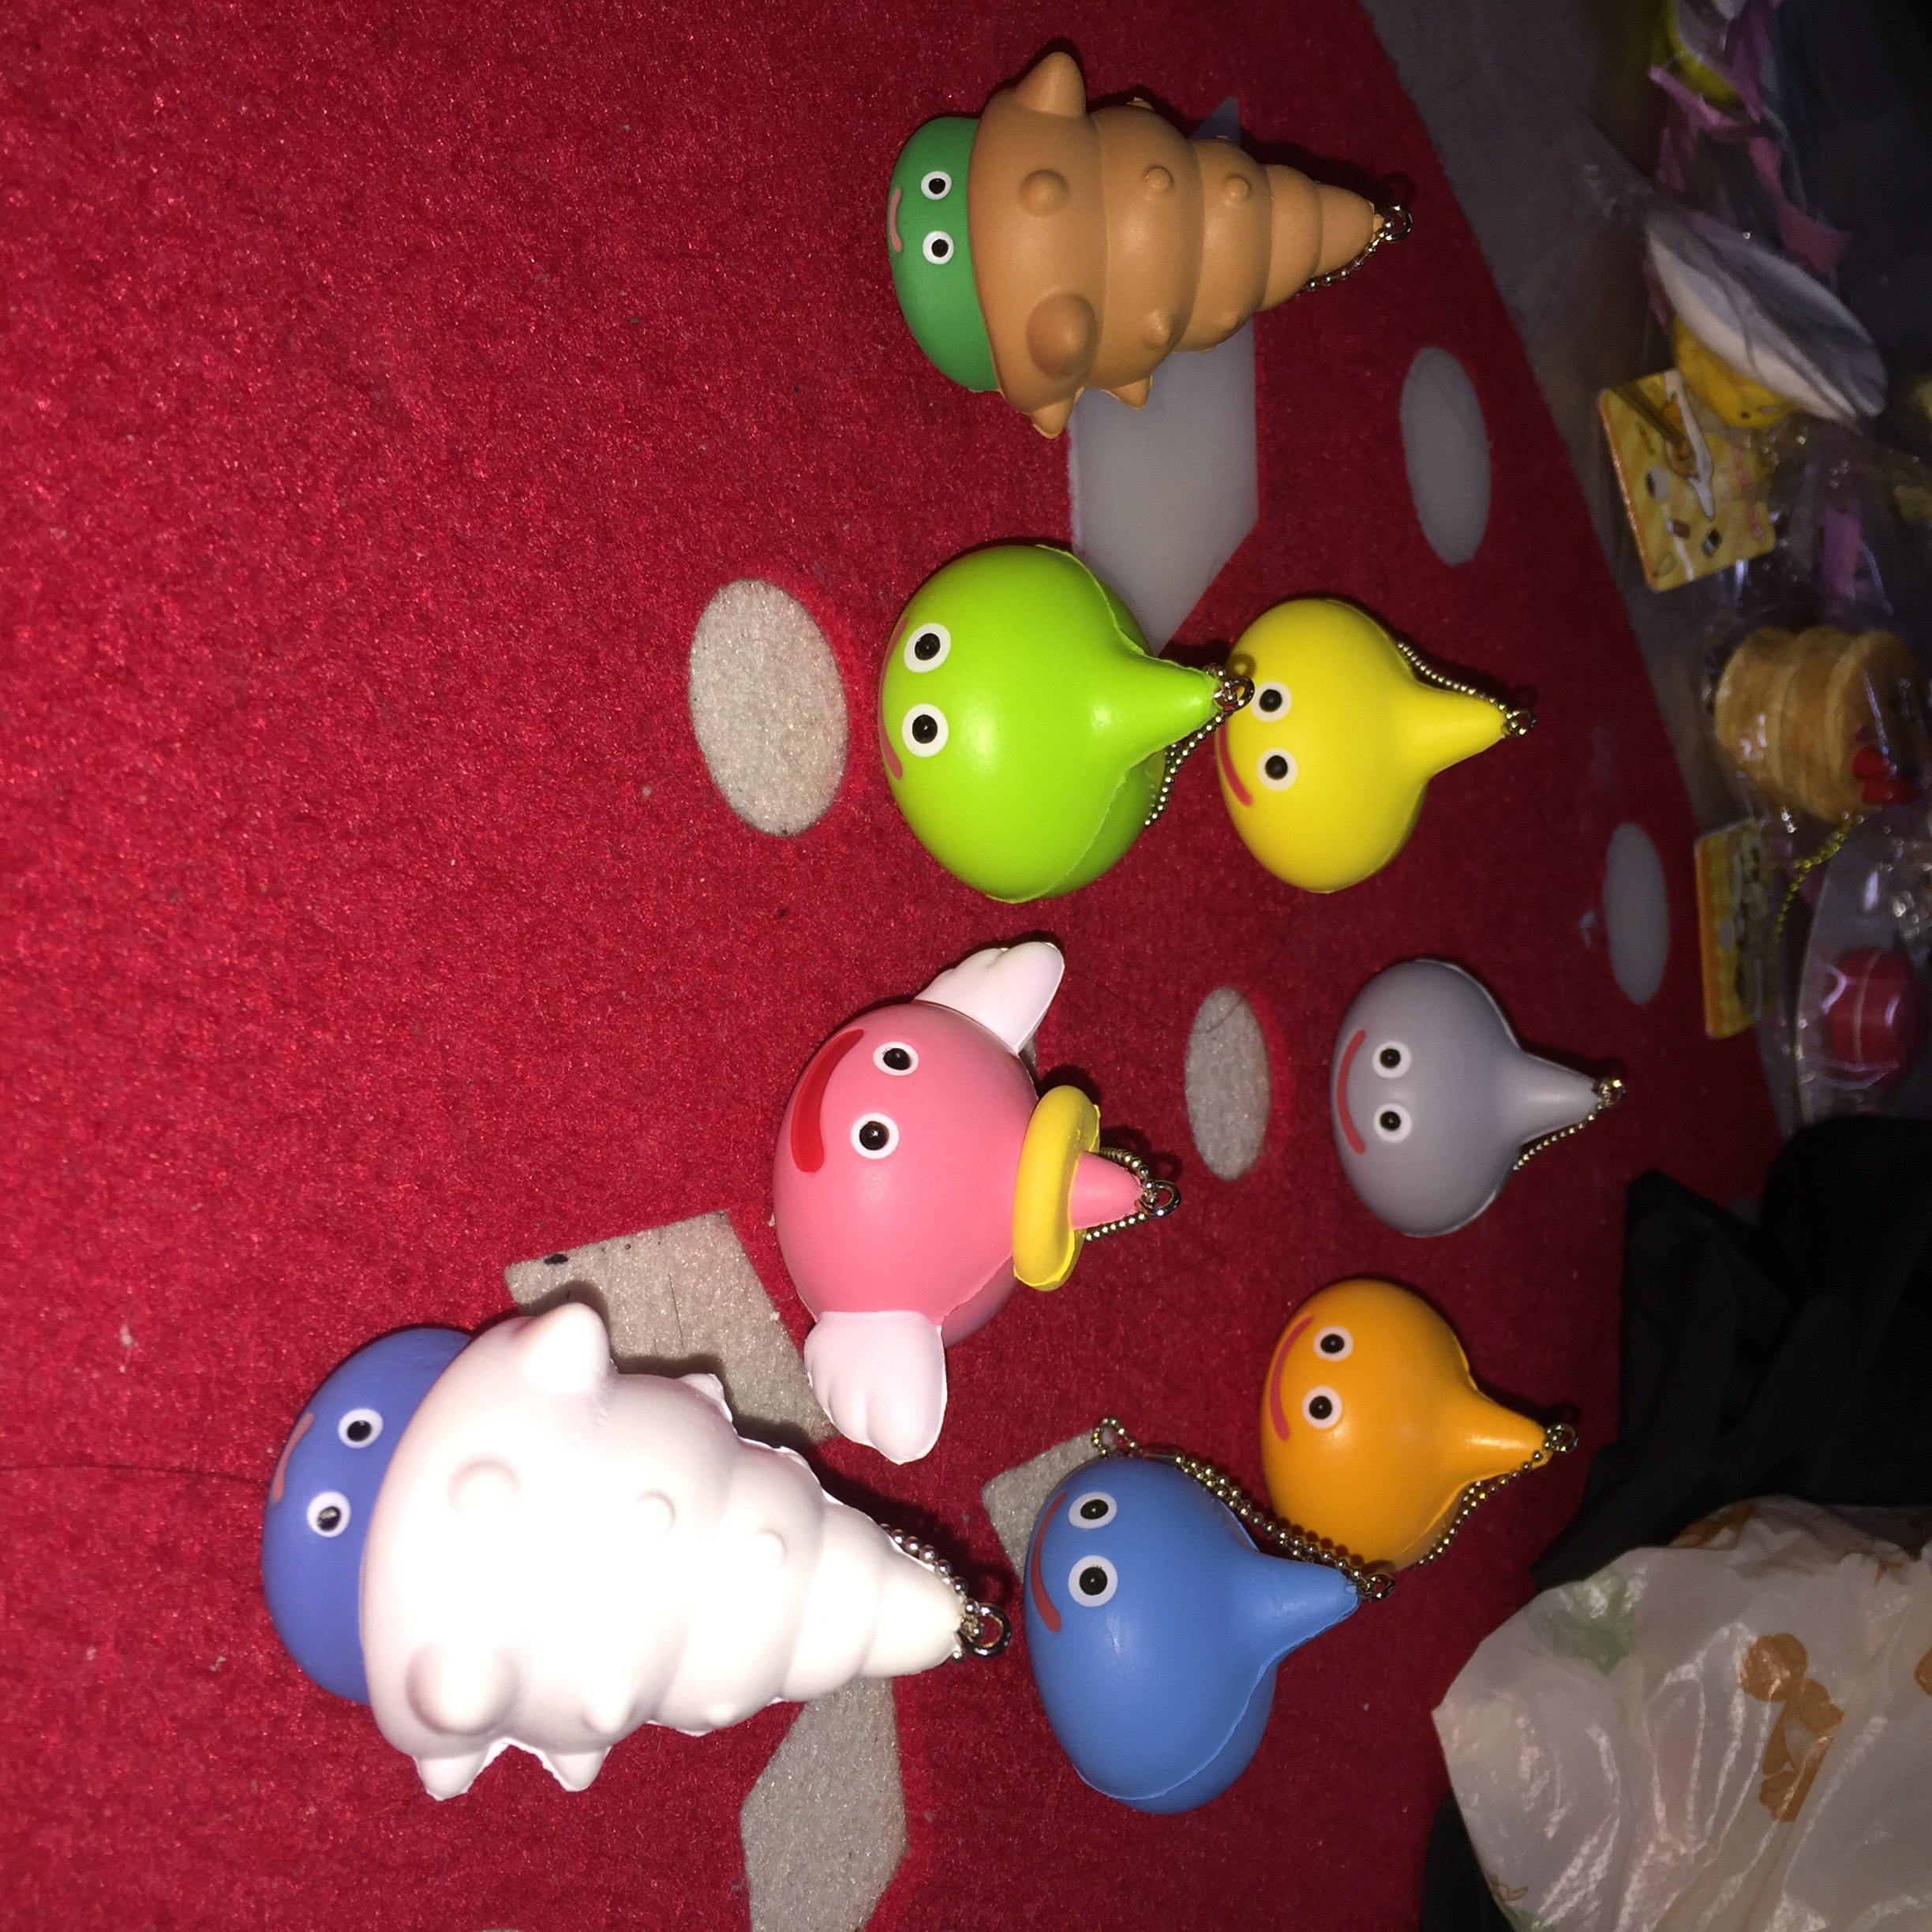 Squishy Collection Small : ~SquishyStuff~ Licensed Cute Small Raindrop Squishy Set of 8 Online Store Powered by Storenvy